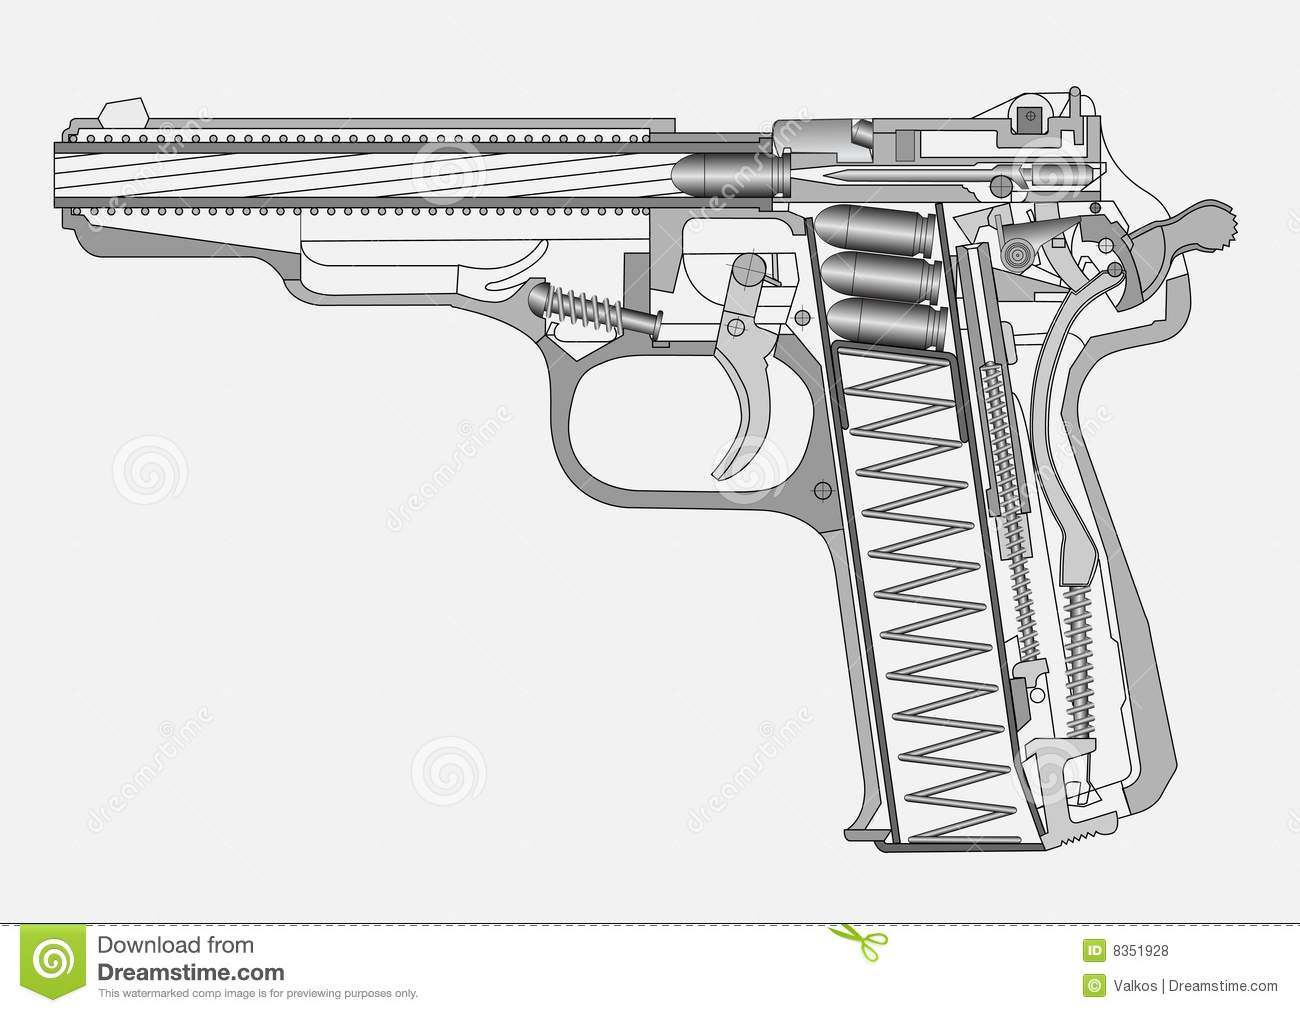 Blueprint Floor Plan Gun Illustration Stock Vector Image Of Bullet Design